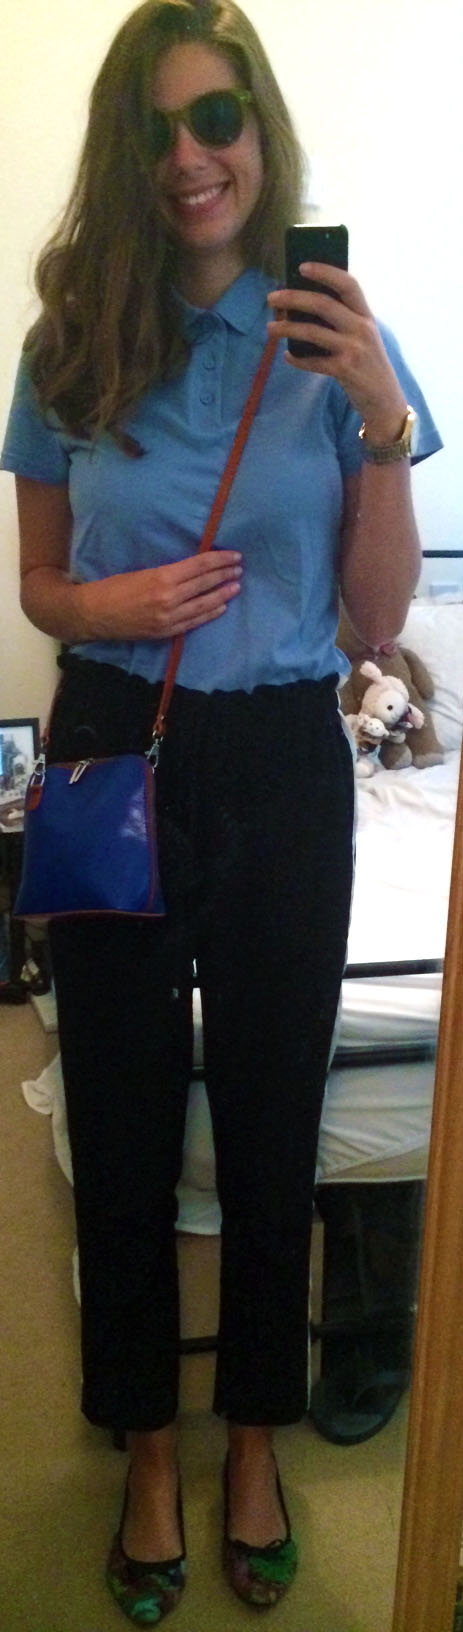 Kids Polo Shirt, River Island Cropped Trousers, Floral Flats,  Cobalt Blue Crossbody Bag